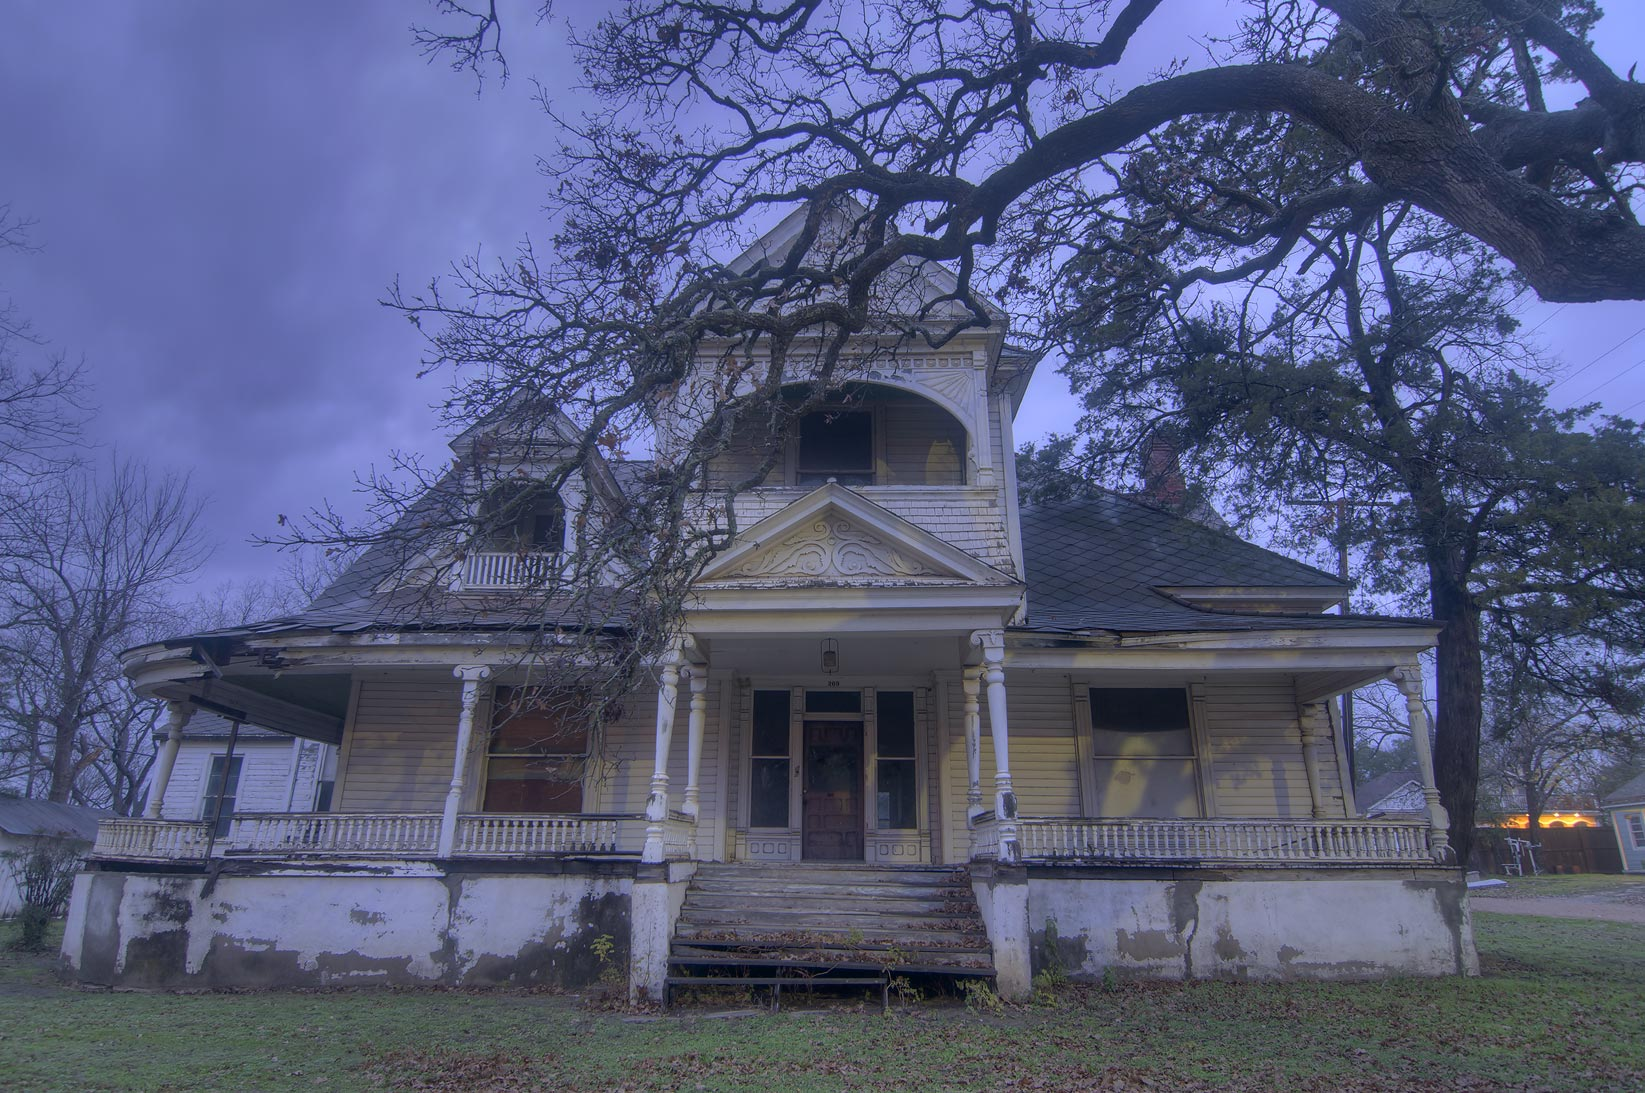 Abrams-Allday House (1887) at 209 East Burnett St...of Pine St. at morning. Calvert, Texas